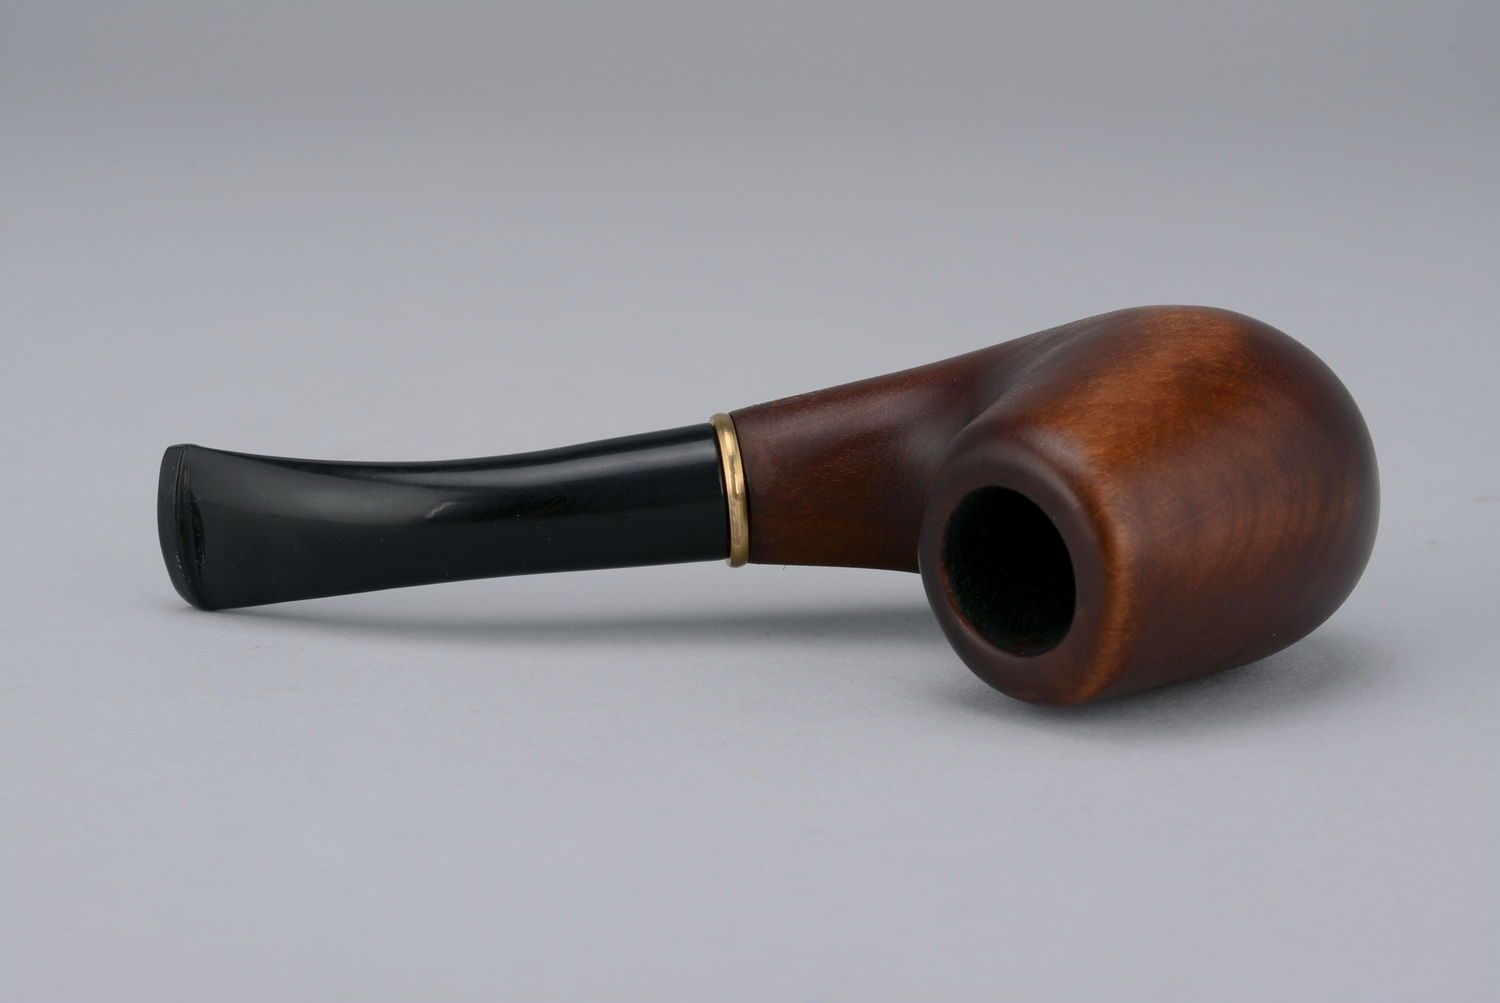 smoking accessories Wooden smoking pipe - MADEheart.com